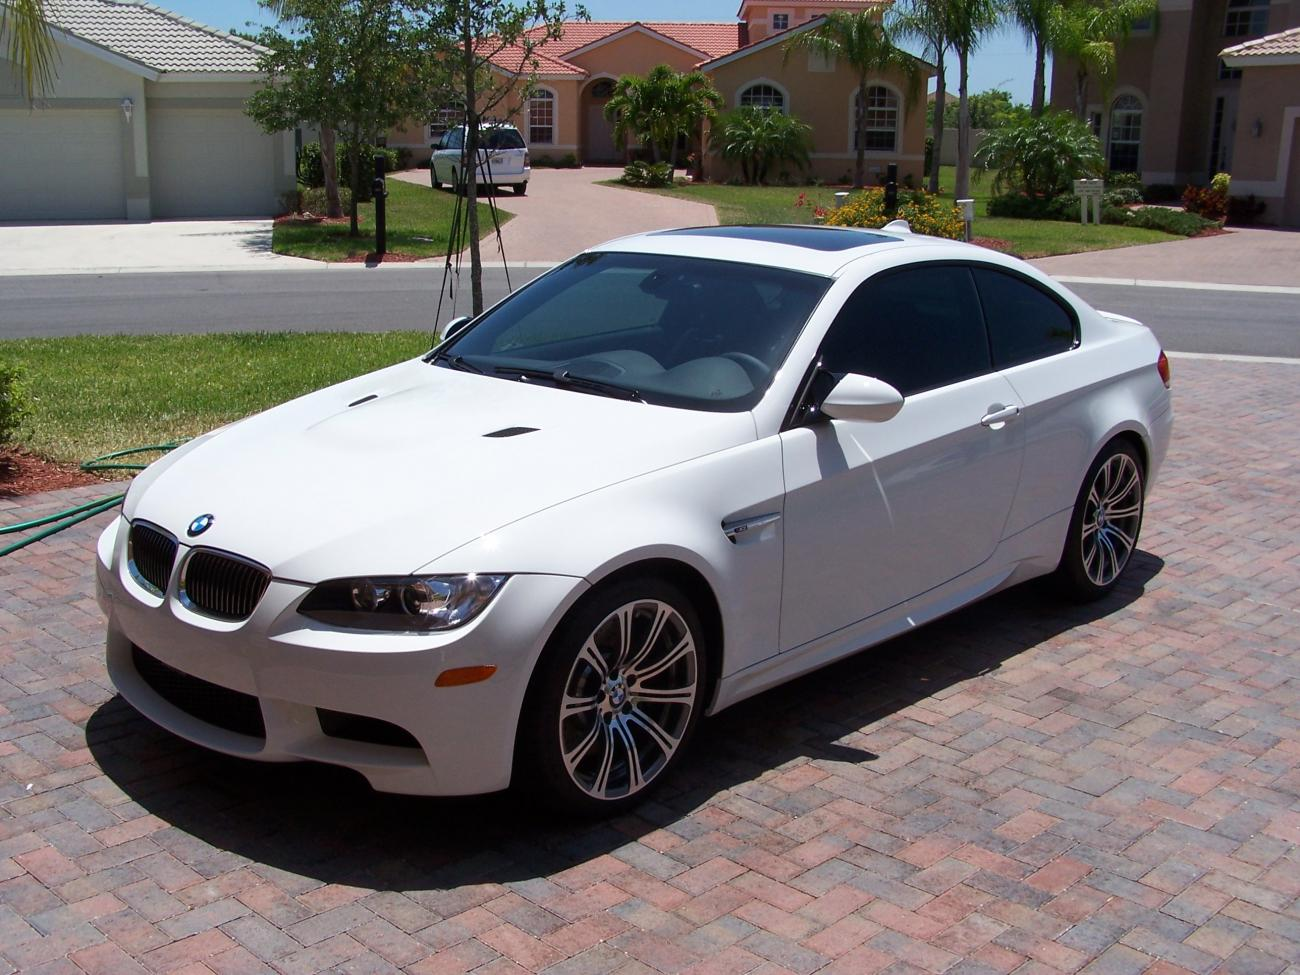 E92 E93 Official Alpine White M3 Coupe Cabrio Thread Page 13